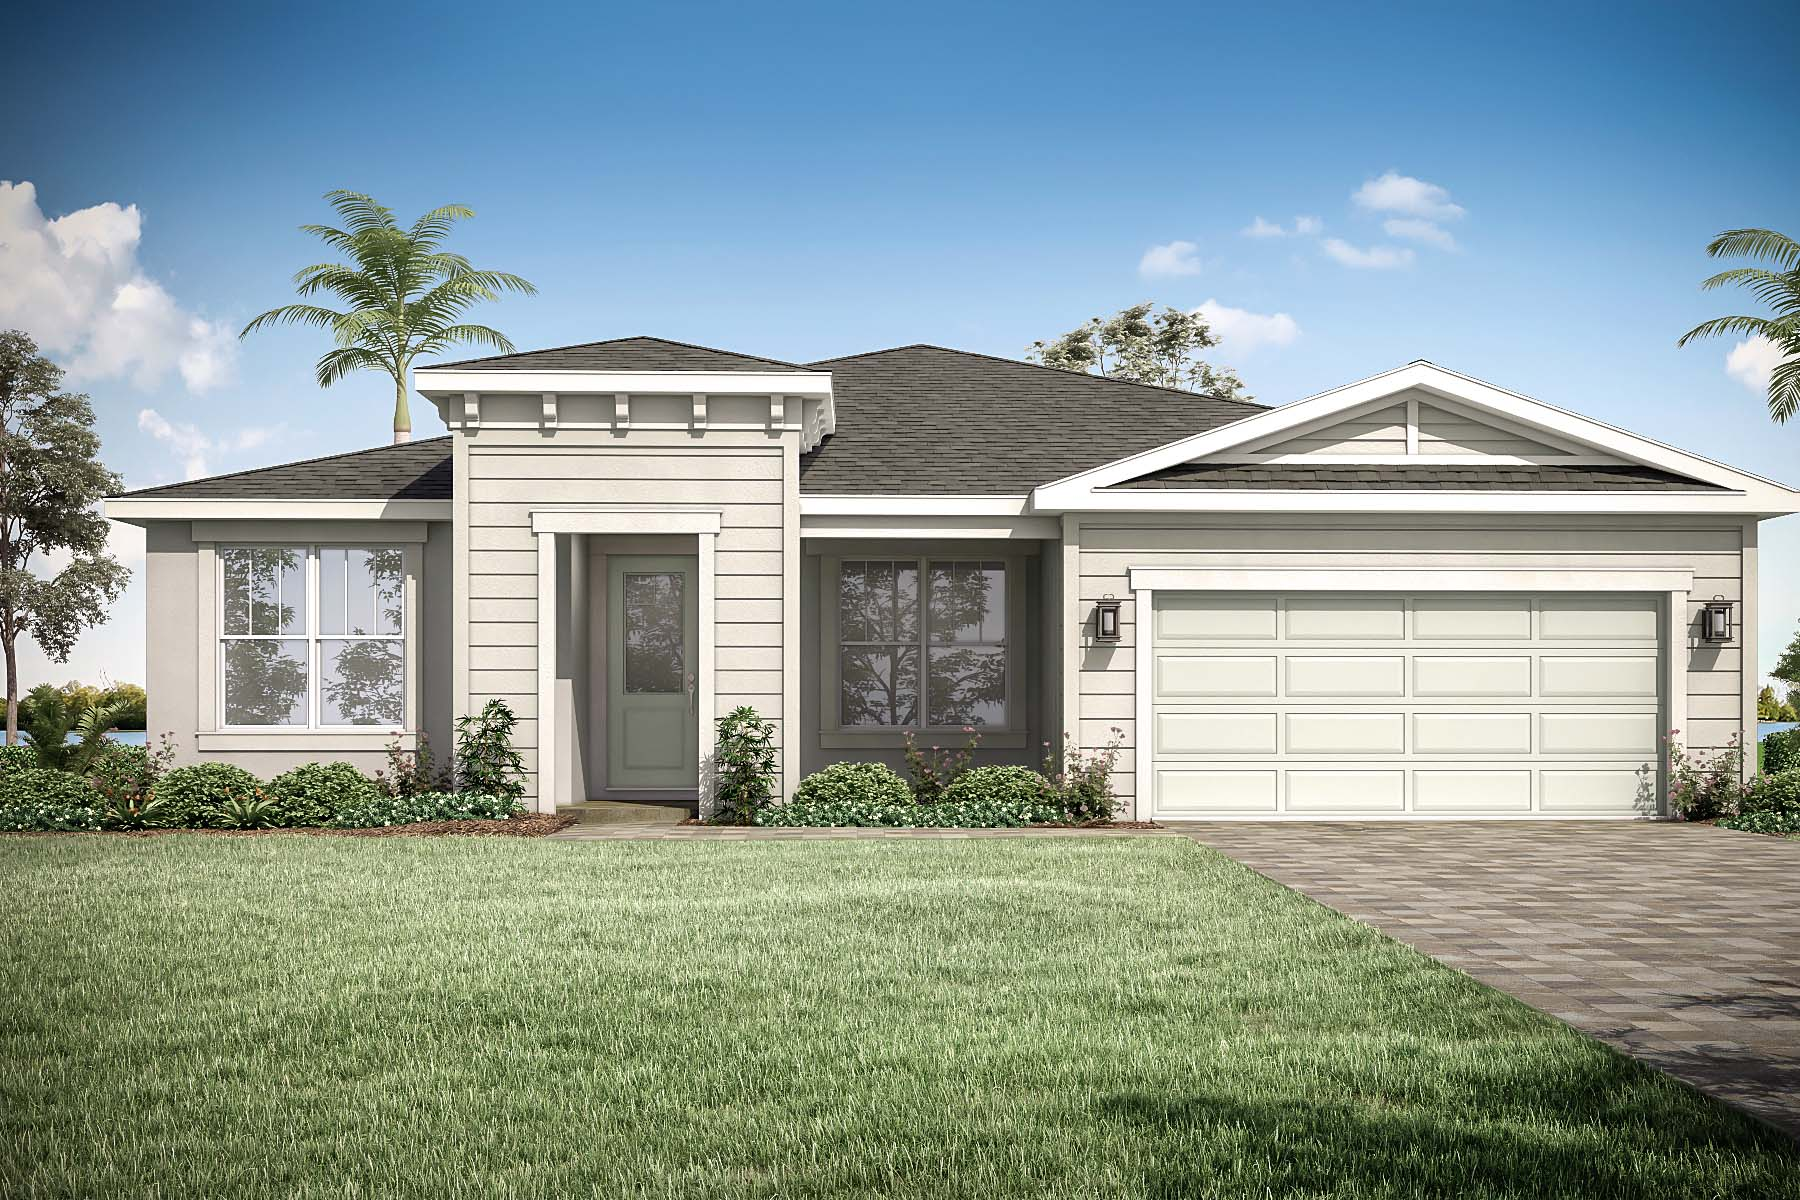 Dahlia Plan Elevation Front at Tradition - Manderlie in Port St. Lucie Florida by Mattamy Homes